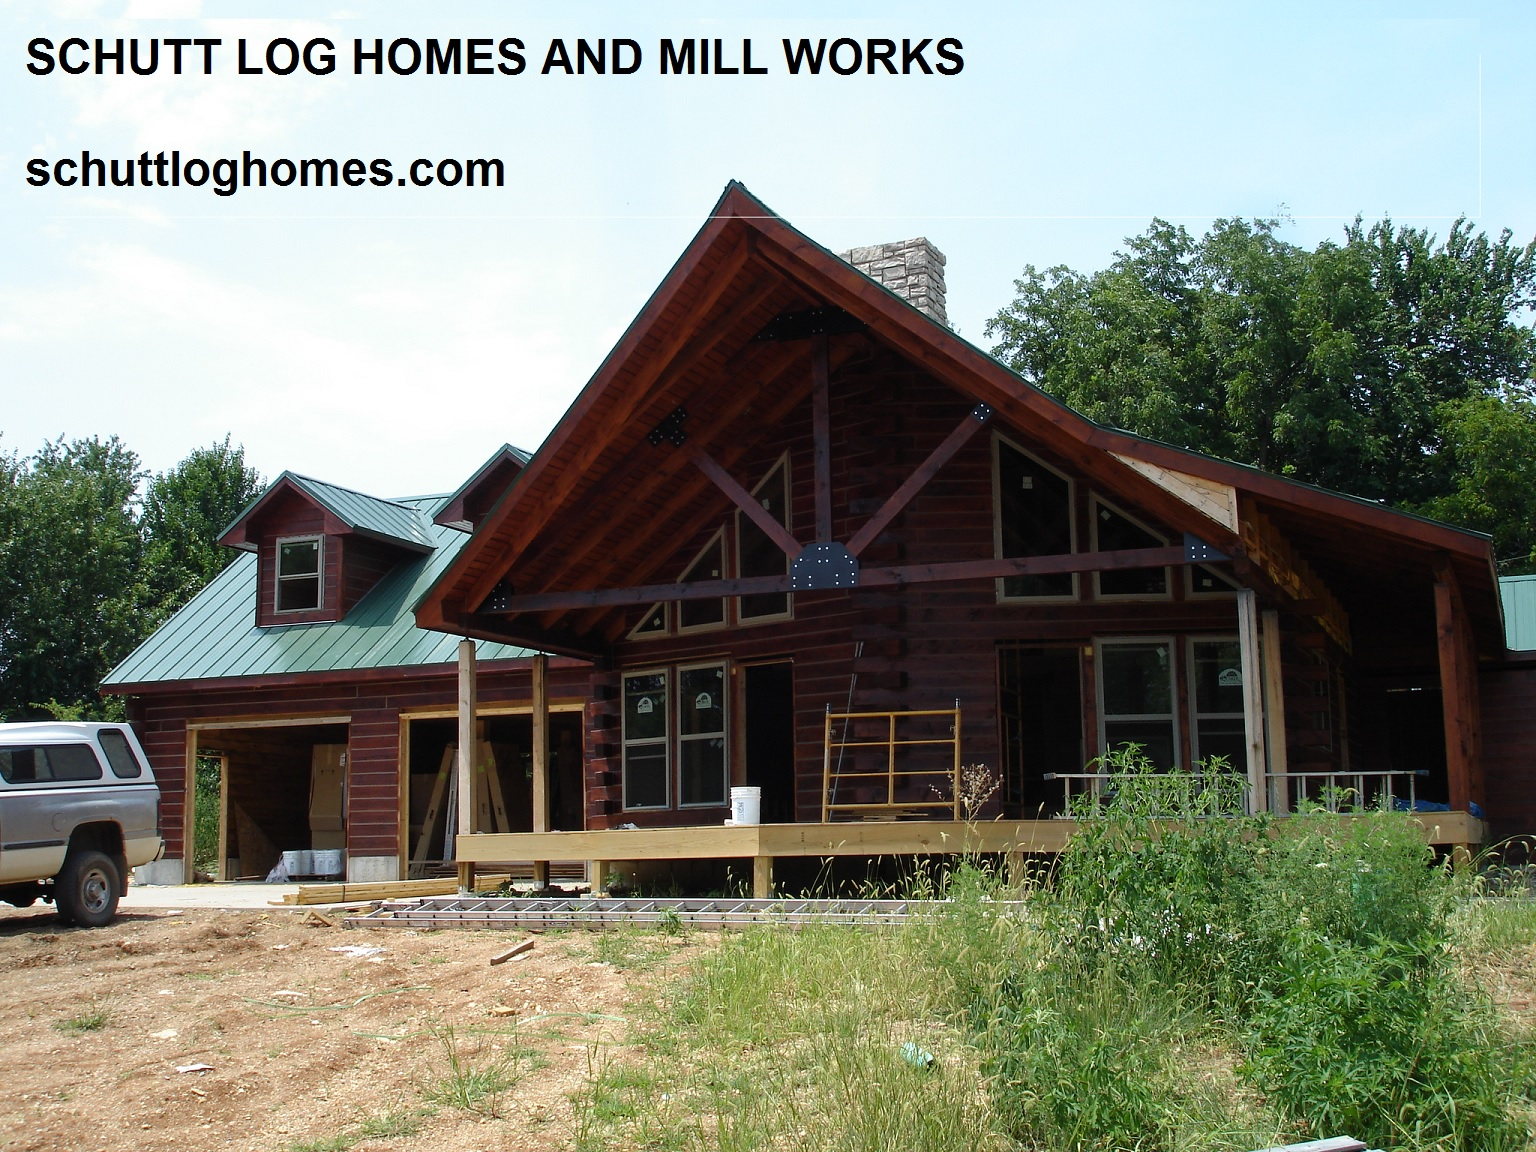 3 Bedroom Cabin Kit Chalet Lumber New Home House Kit 3